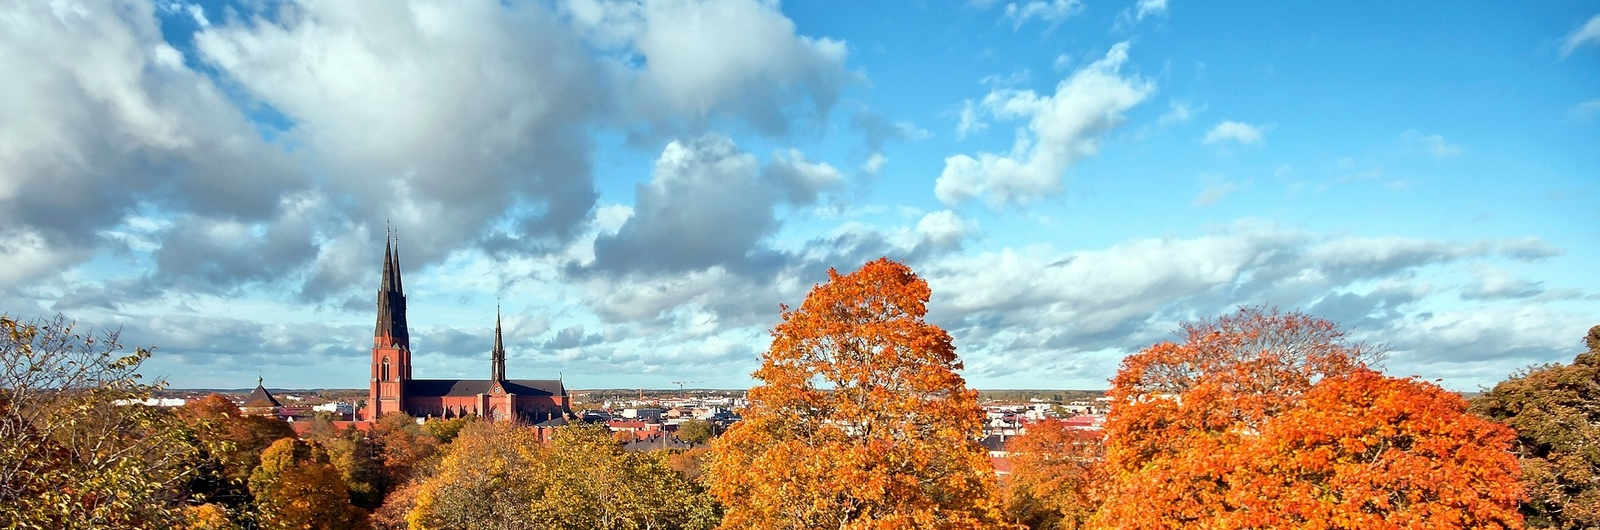 uppsala city header